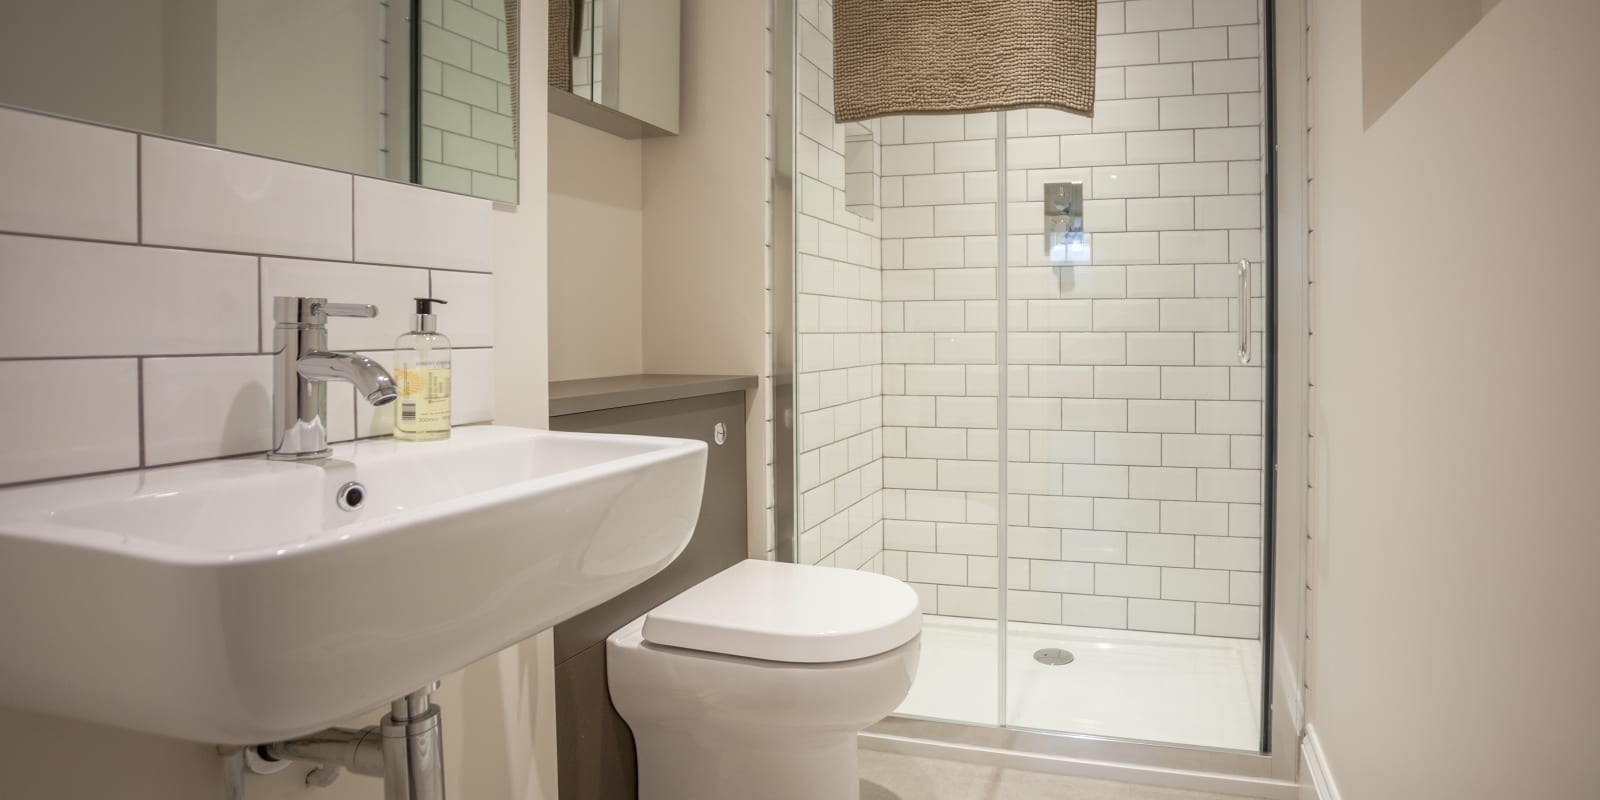 Bathroom at The Skylark Studio - Citybase Apartments